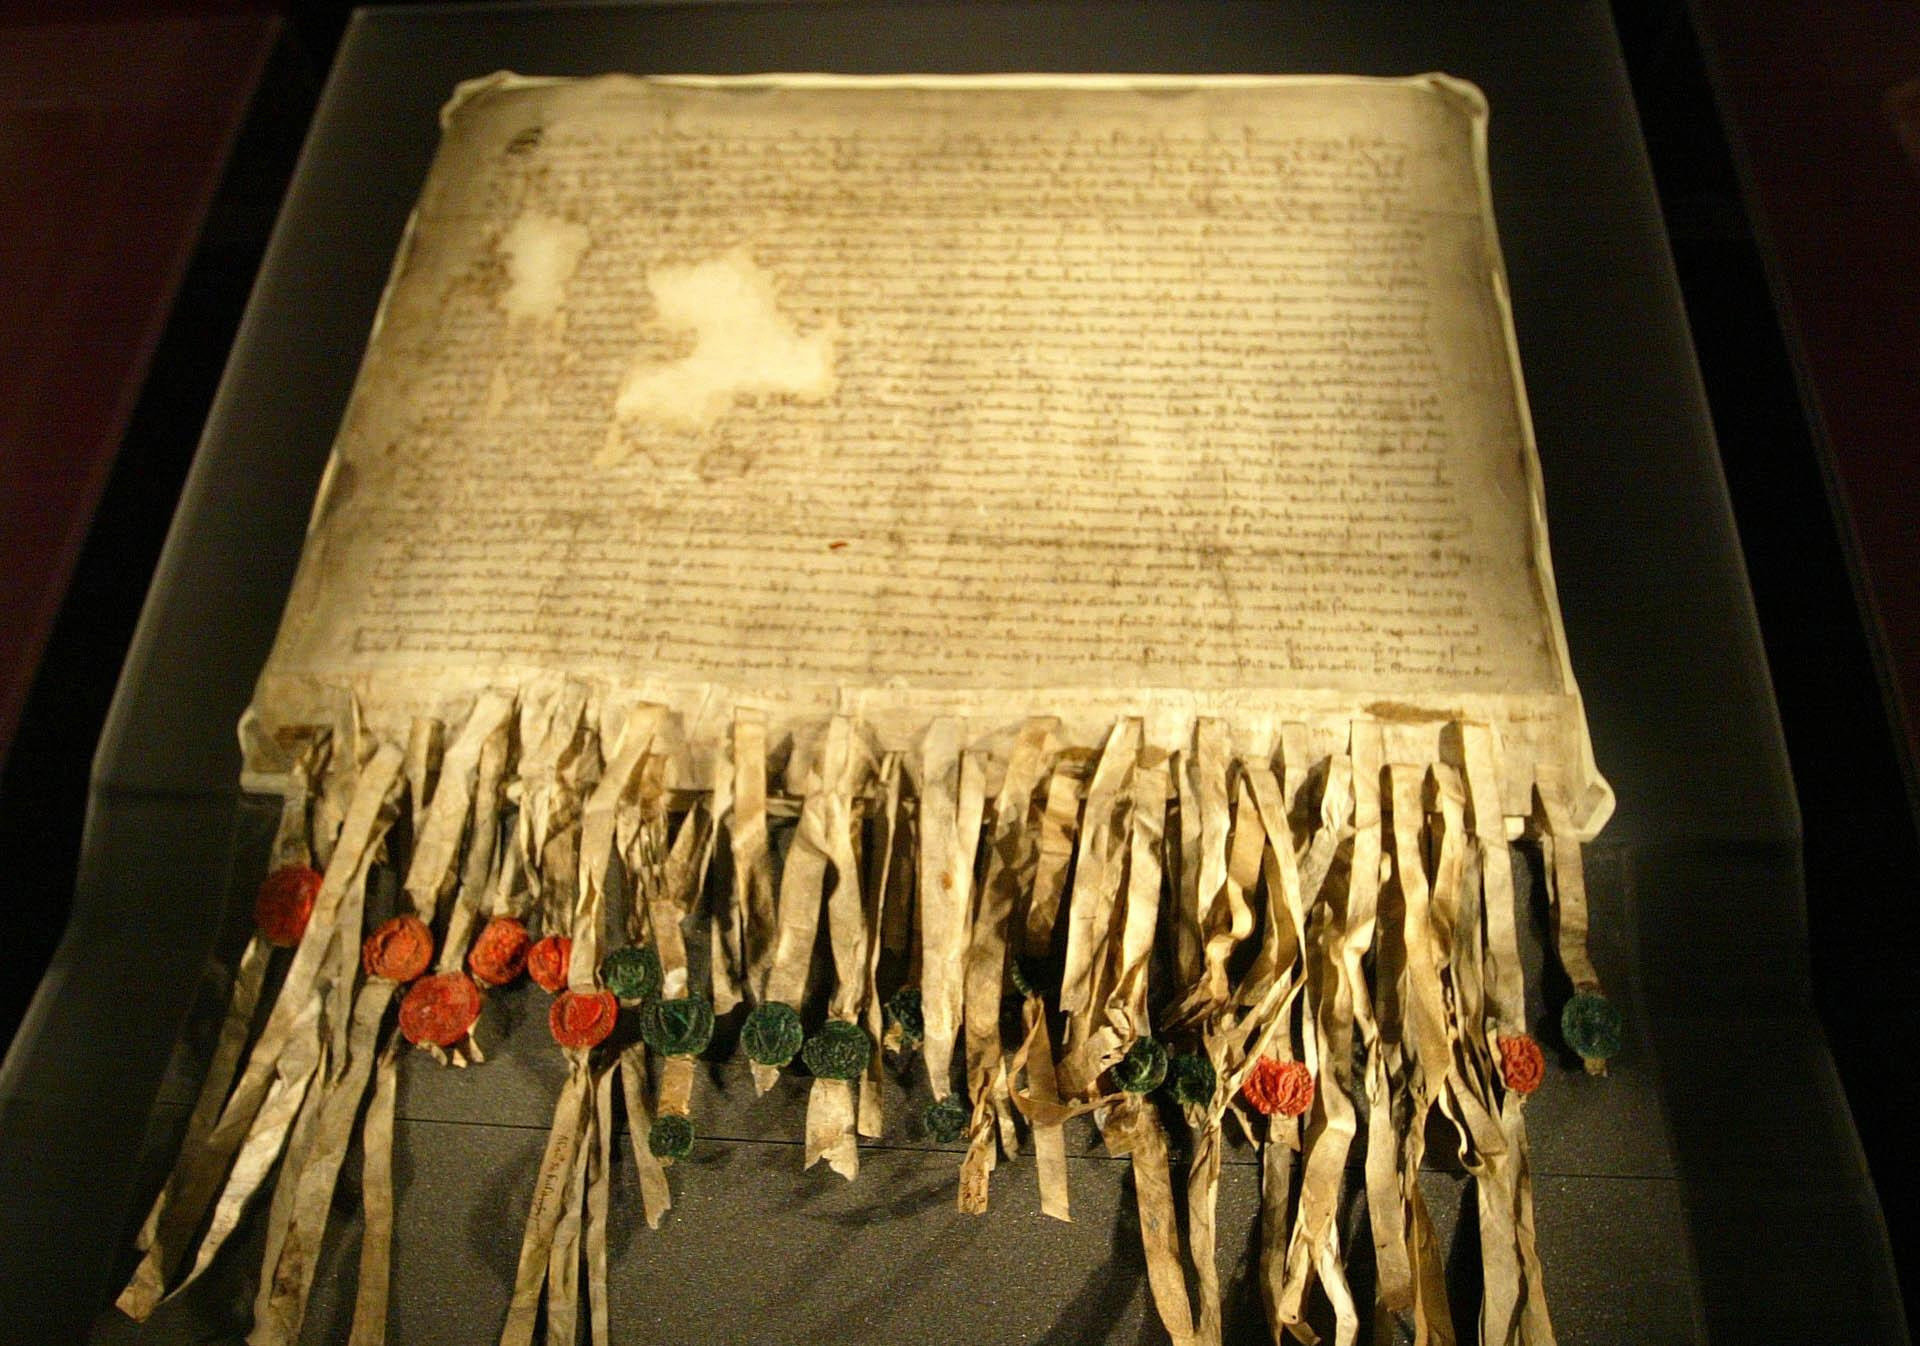 Possibly Scotland's most famous Latin document – the Declaration of Arbroath.